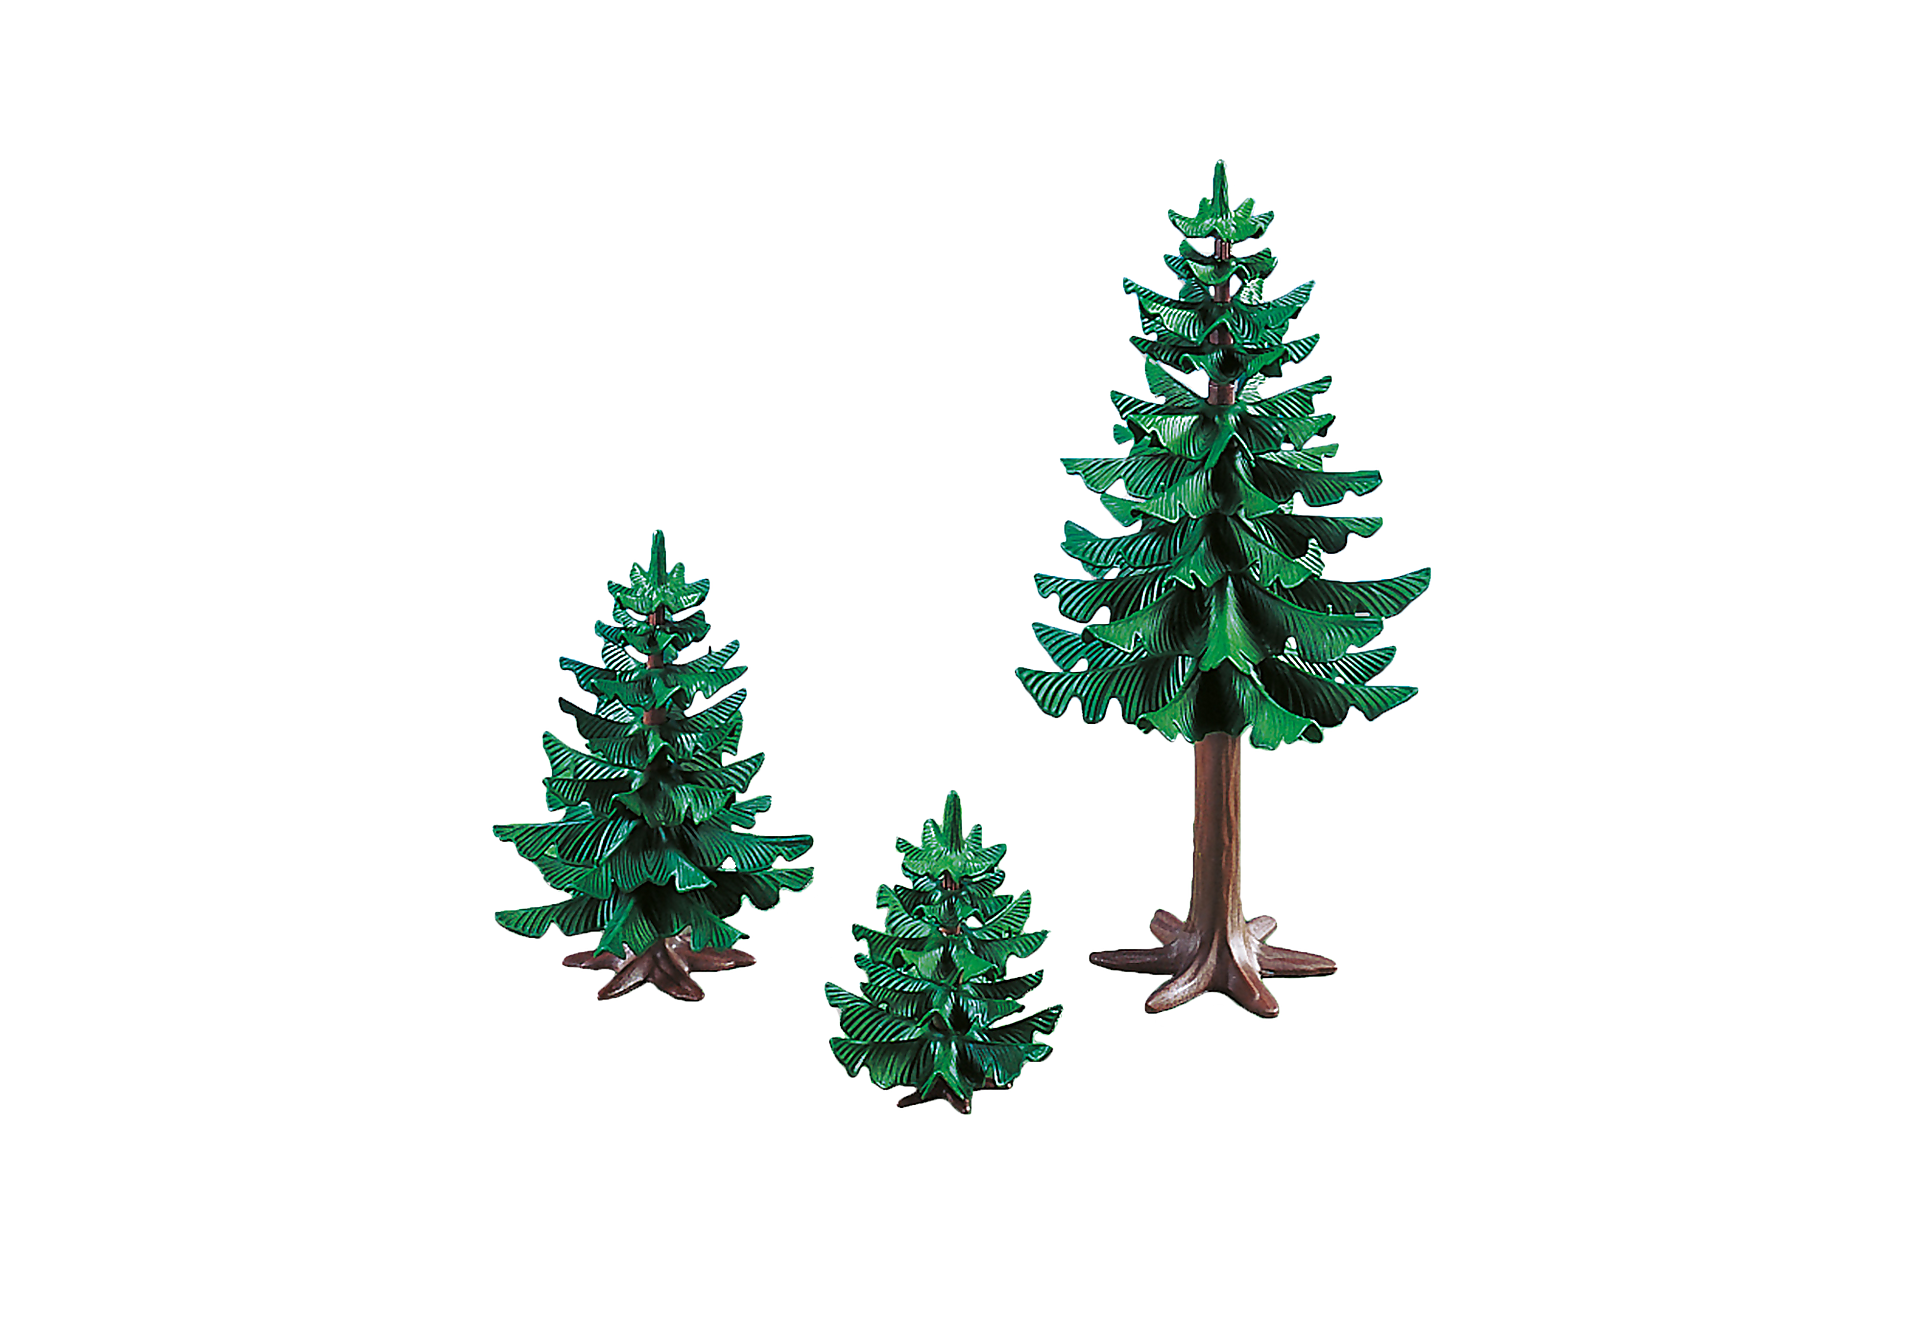 7725 Pine trees zoom image1